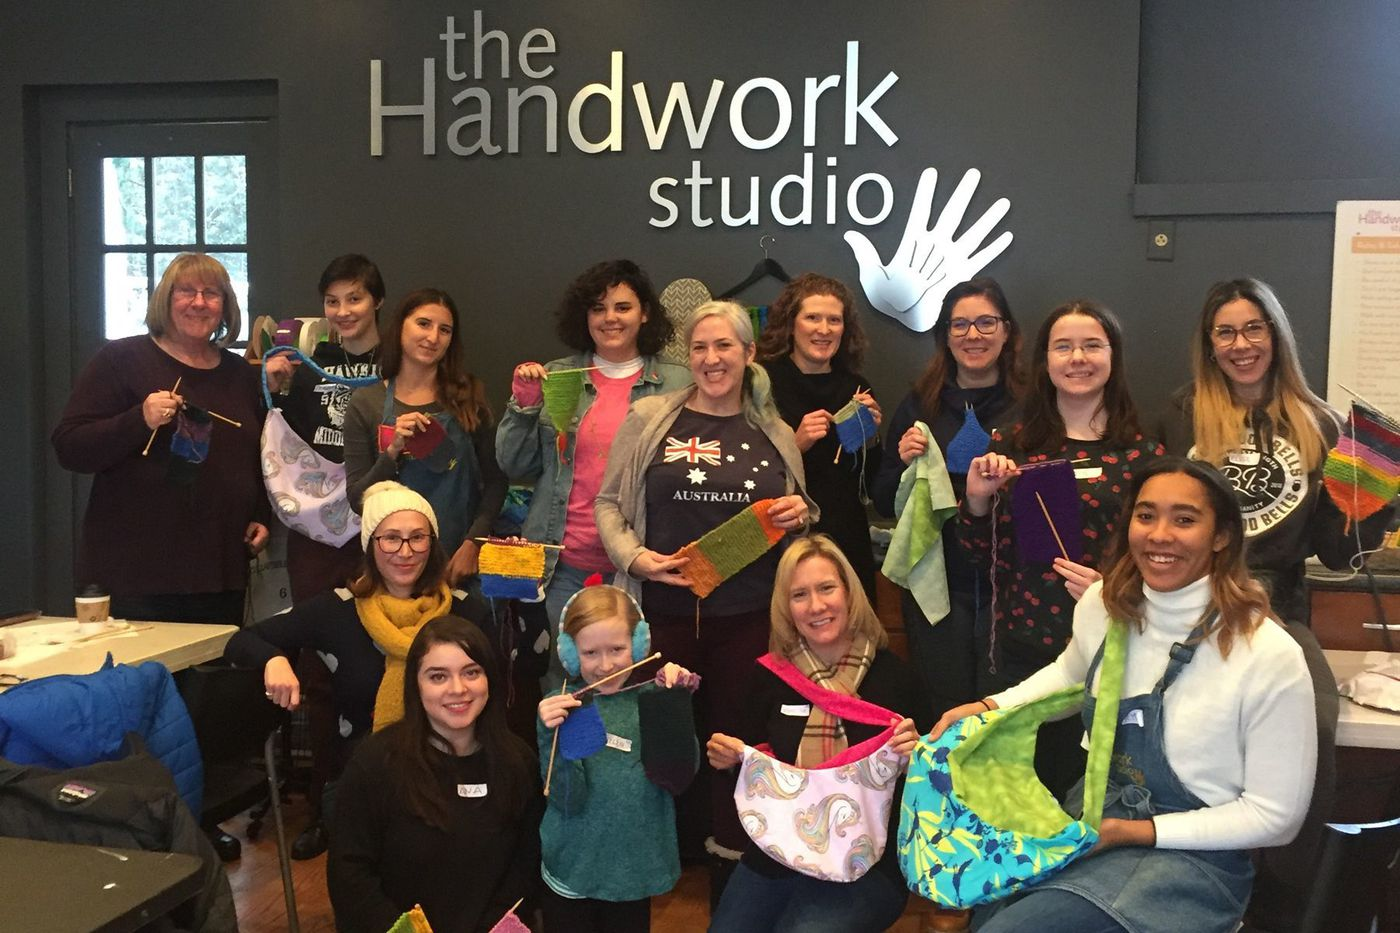 Australia Baby Animals Get Assist from The Handwork Studio in Narberth